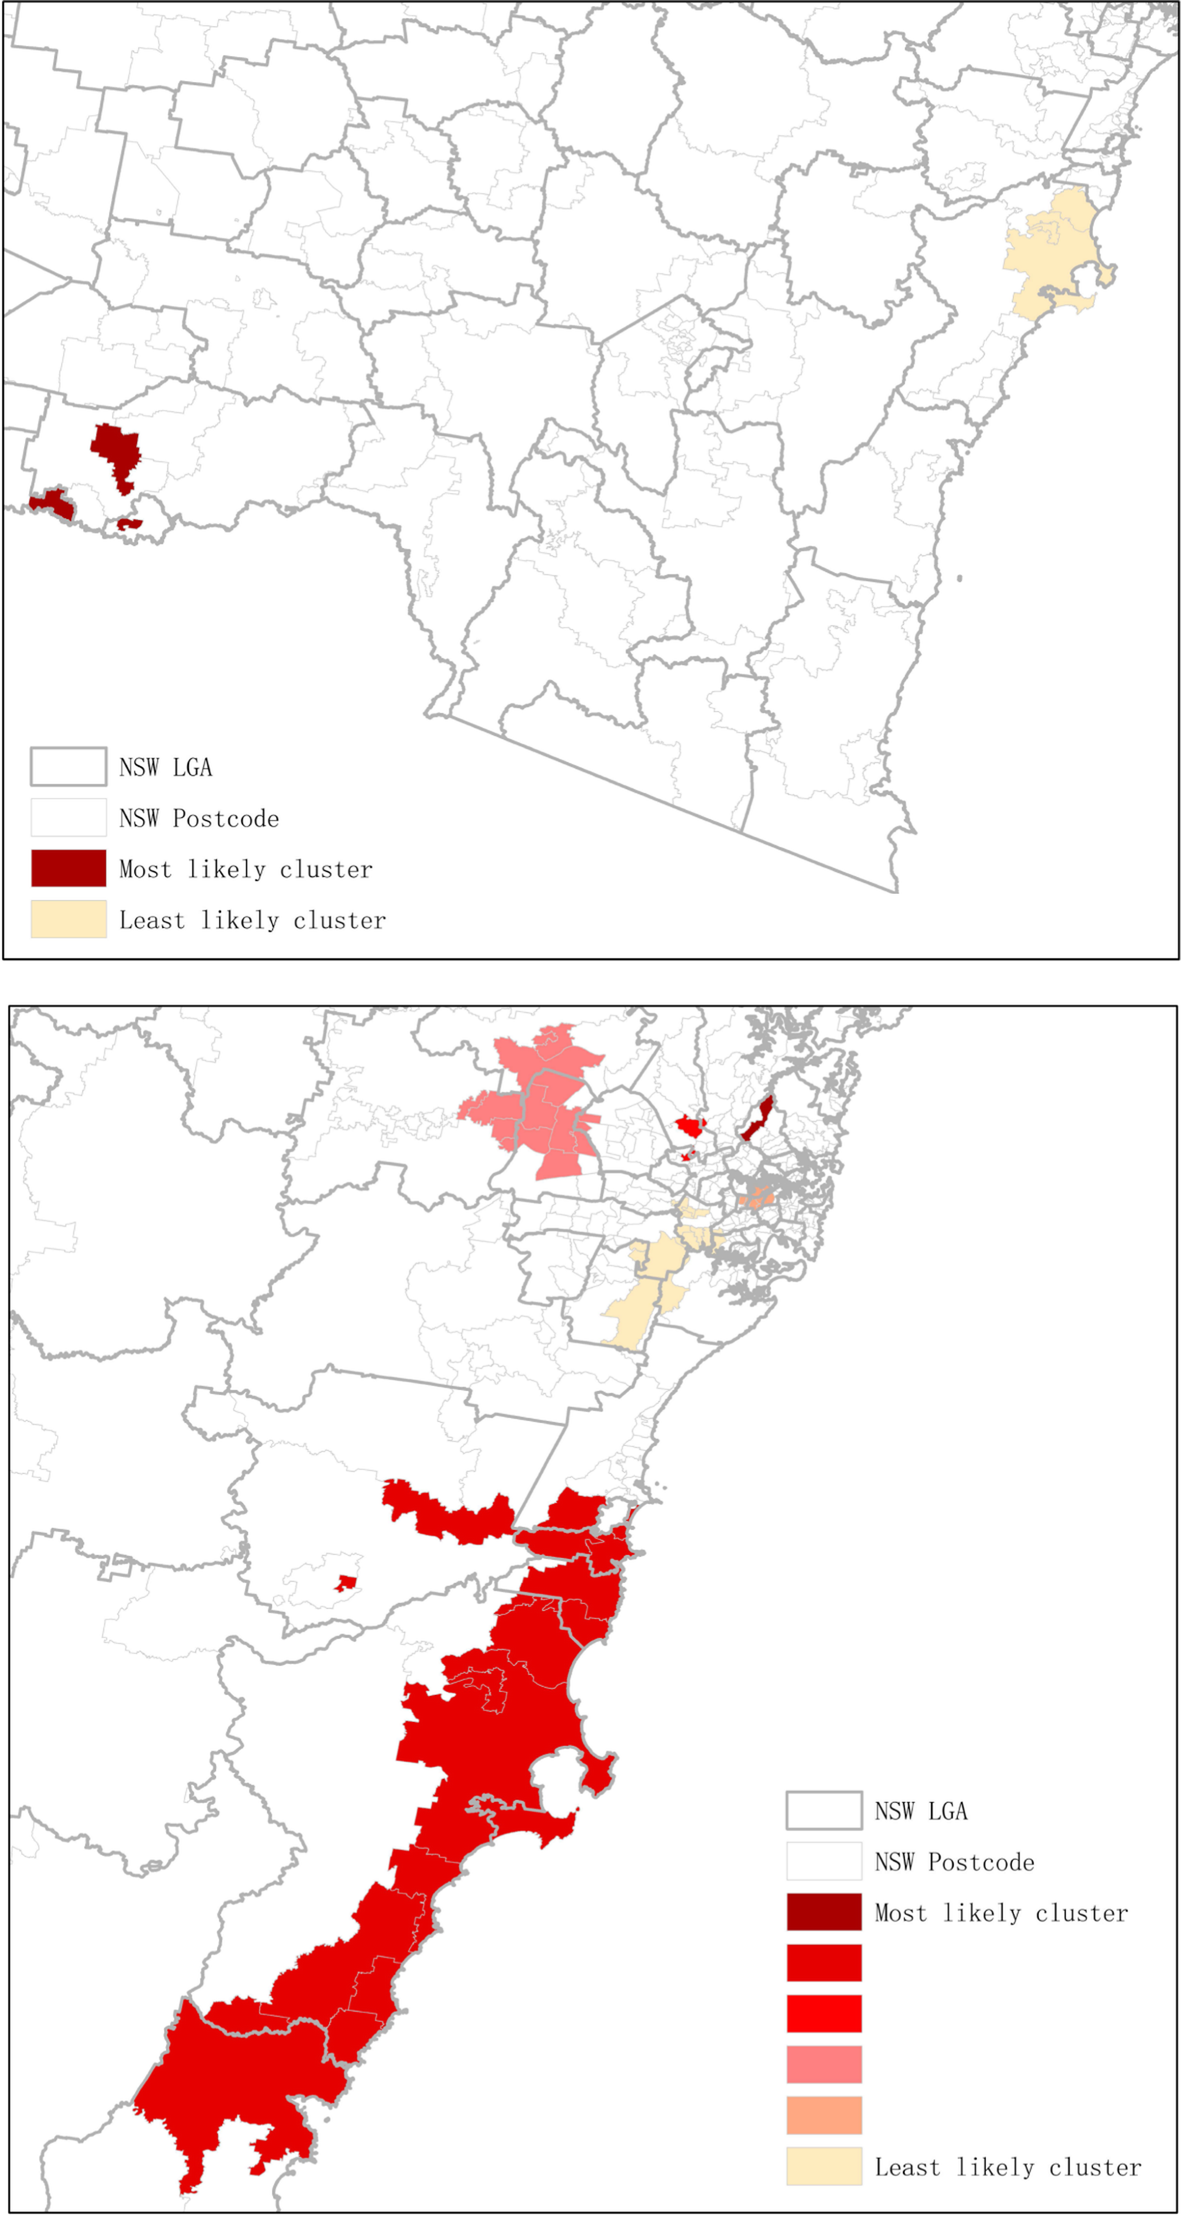 Adverse Drug Reactions Due To Opioid Analgesic Use In New South Wales Australia A Spatial Temporal Analysis Springerlink